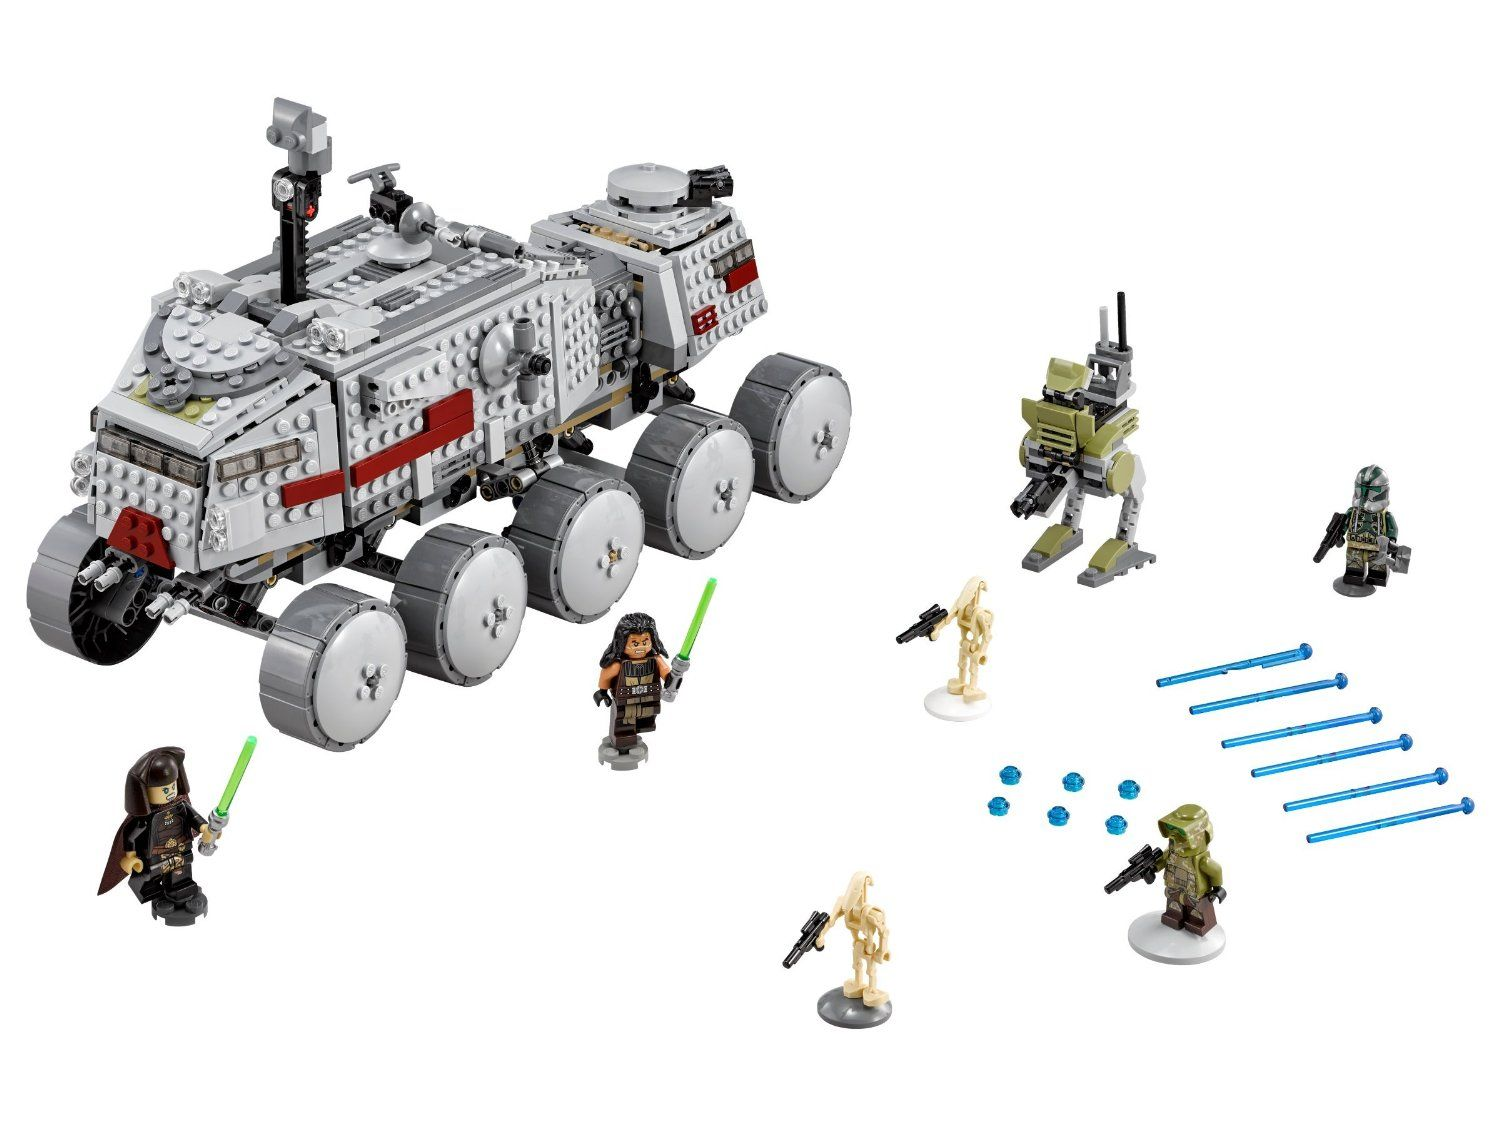 Official Lego Star Wars 2016 Summer Set Box And Contents Geek Culture Lego Star Wars Star Wars Toys Star Wars Clone Wars